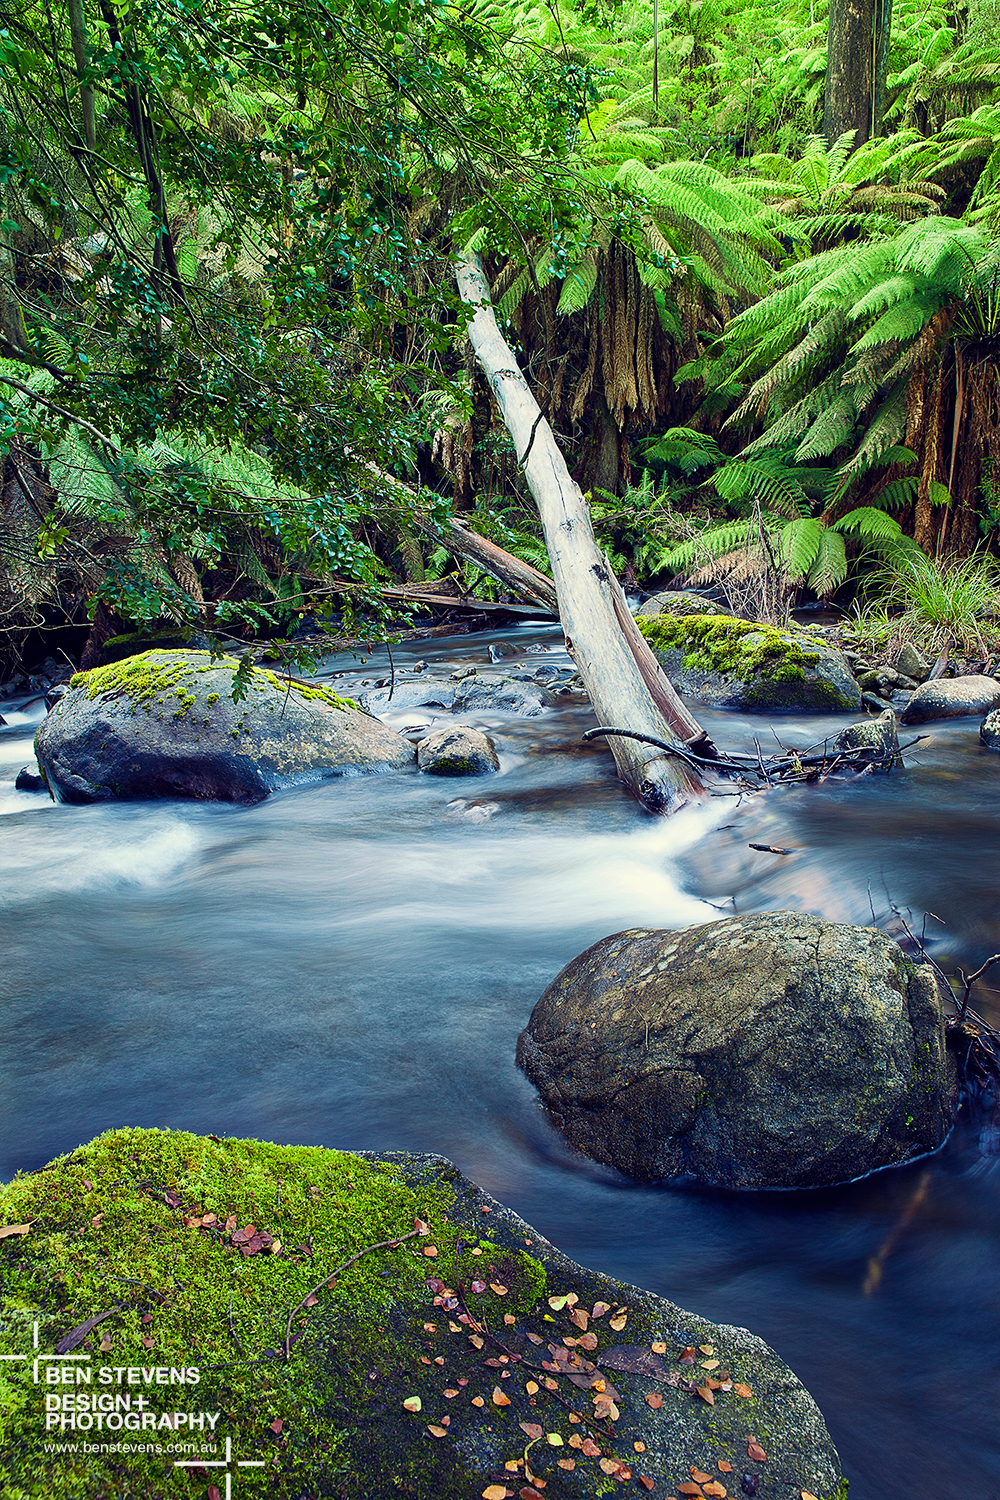 Rainforest Stream | Marysville, Australia June 2015 A quiet stream along Lady Talbot drive runs down to Marysville in Victoria's north east. This is a beautiful alpine part of Australia's south. Purchase printshere